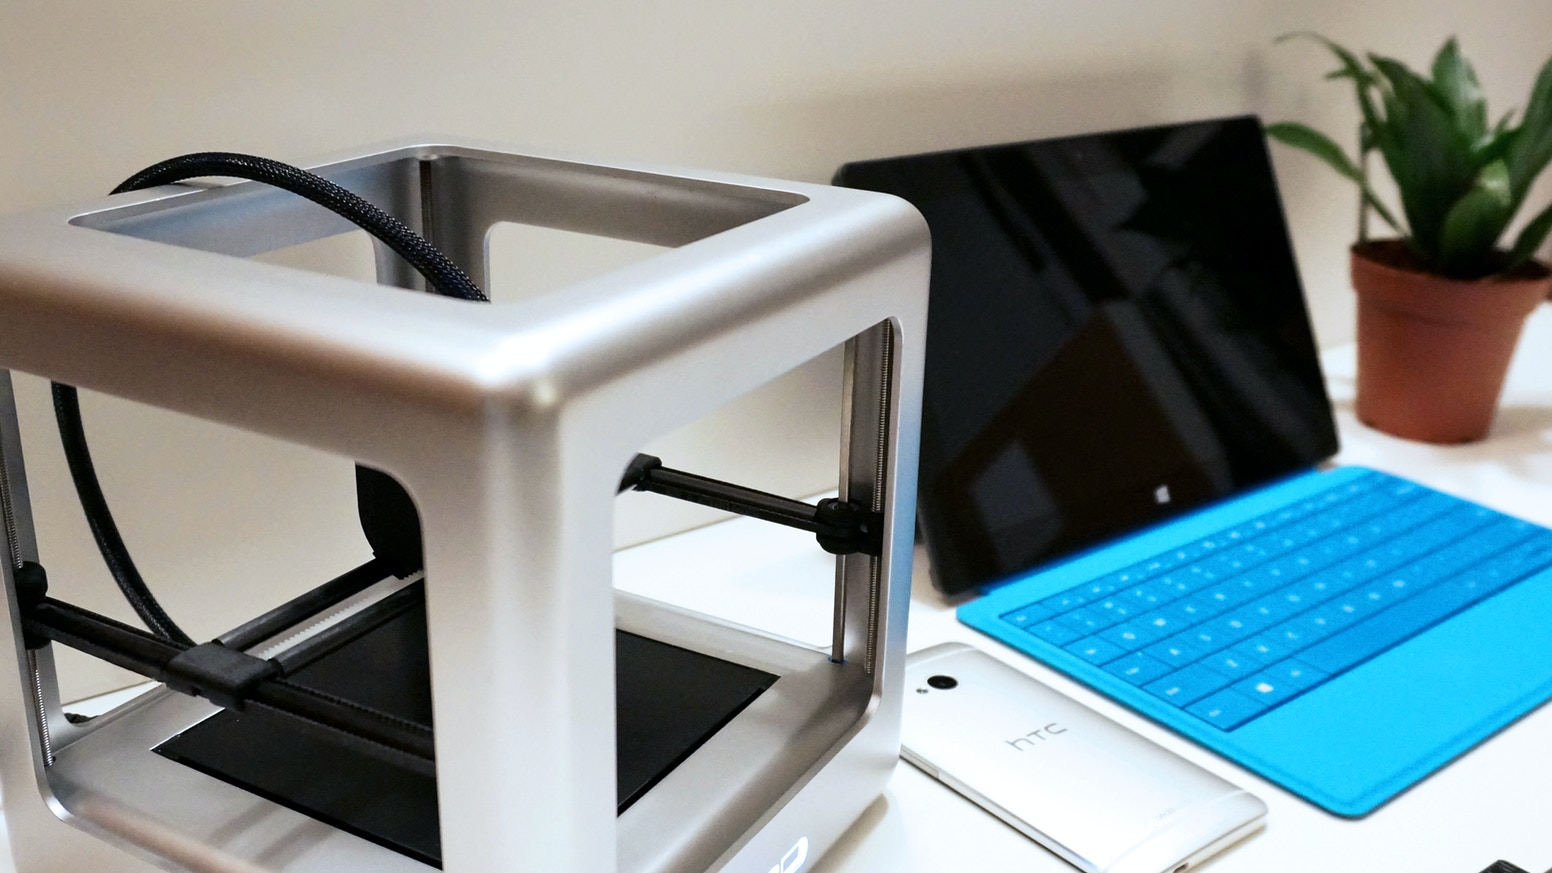 The micro the first truly consumer 3d printer by m3d llc the first truly consumer 3d printer should be incredibly intuitive easy to own and fandeluxe Choice Image